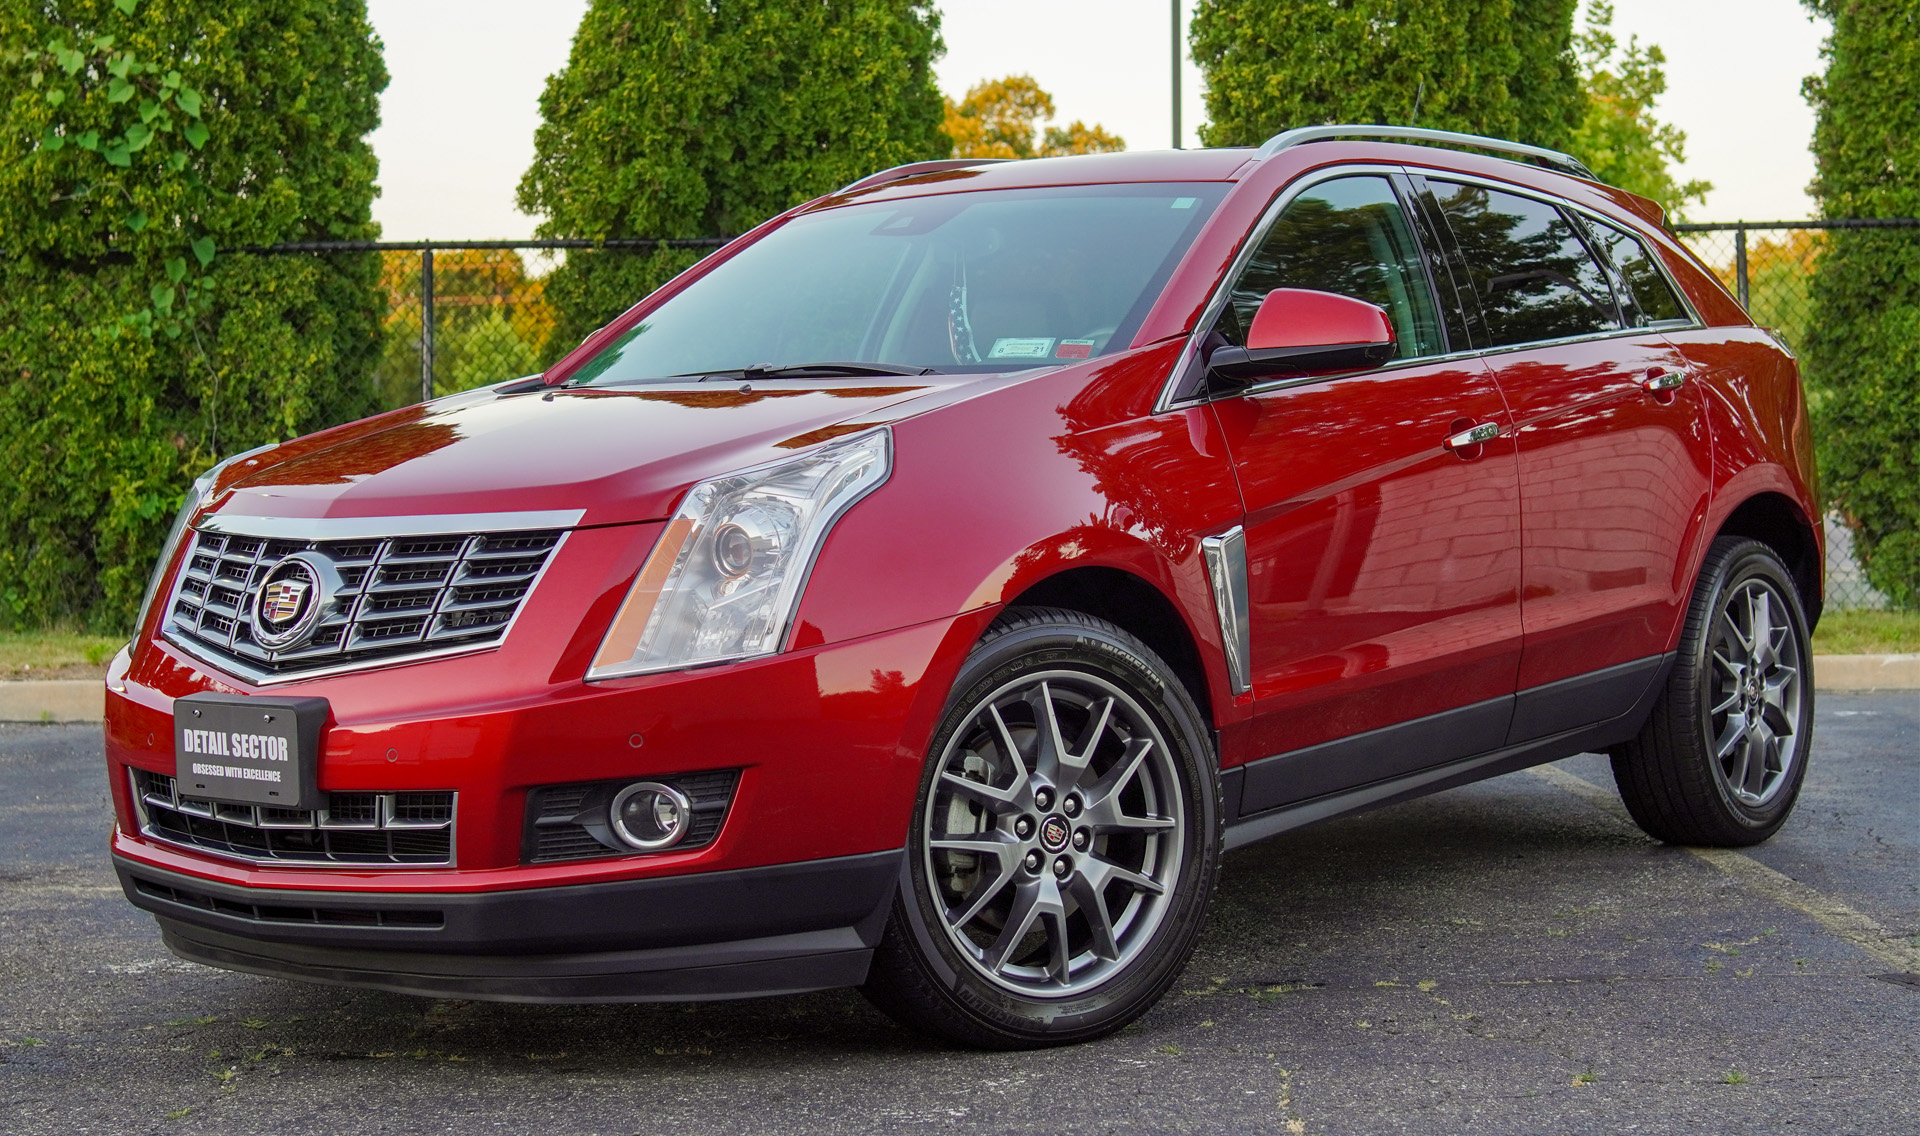 Red Cadillac SUV Outdoors